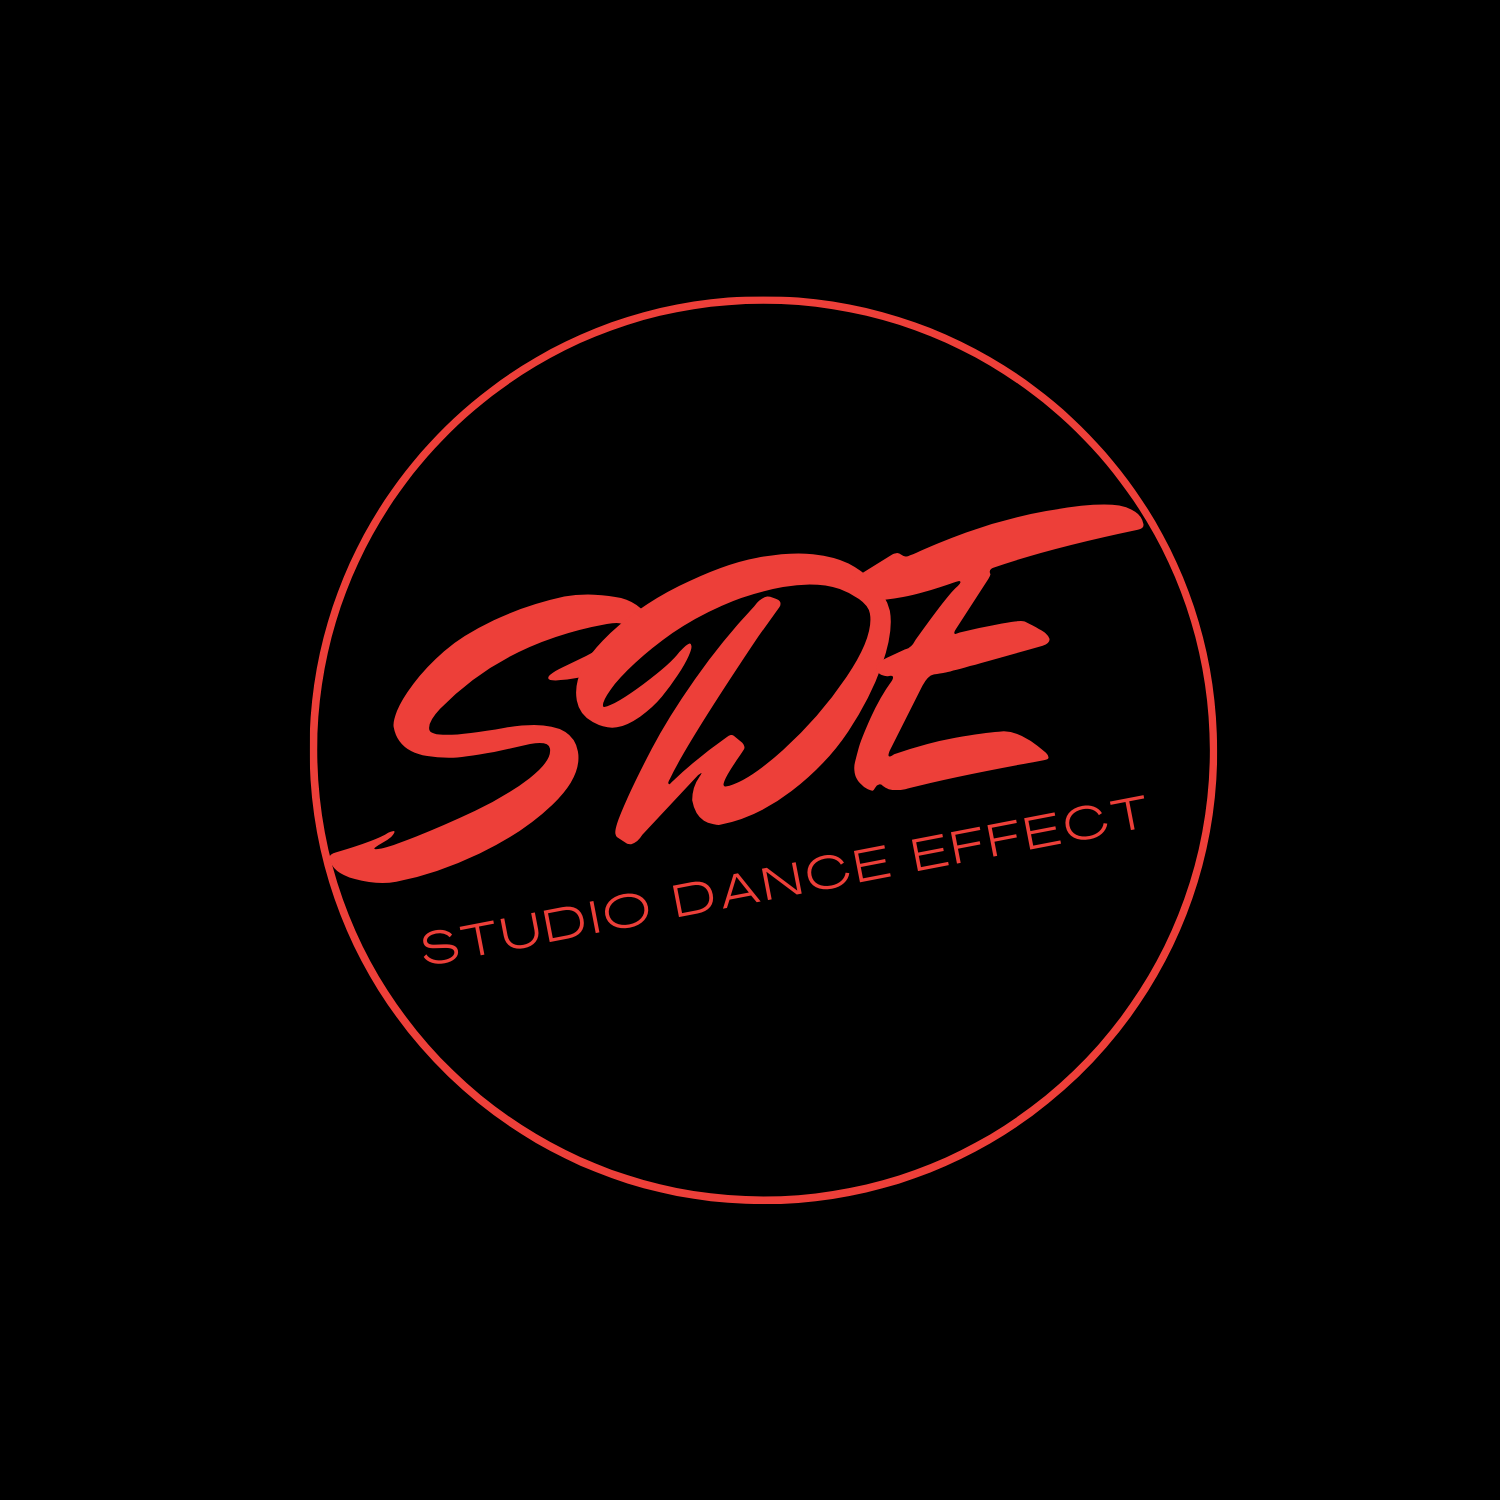 Studio Dance Effect